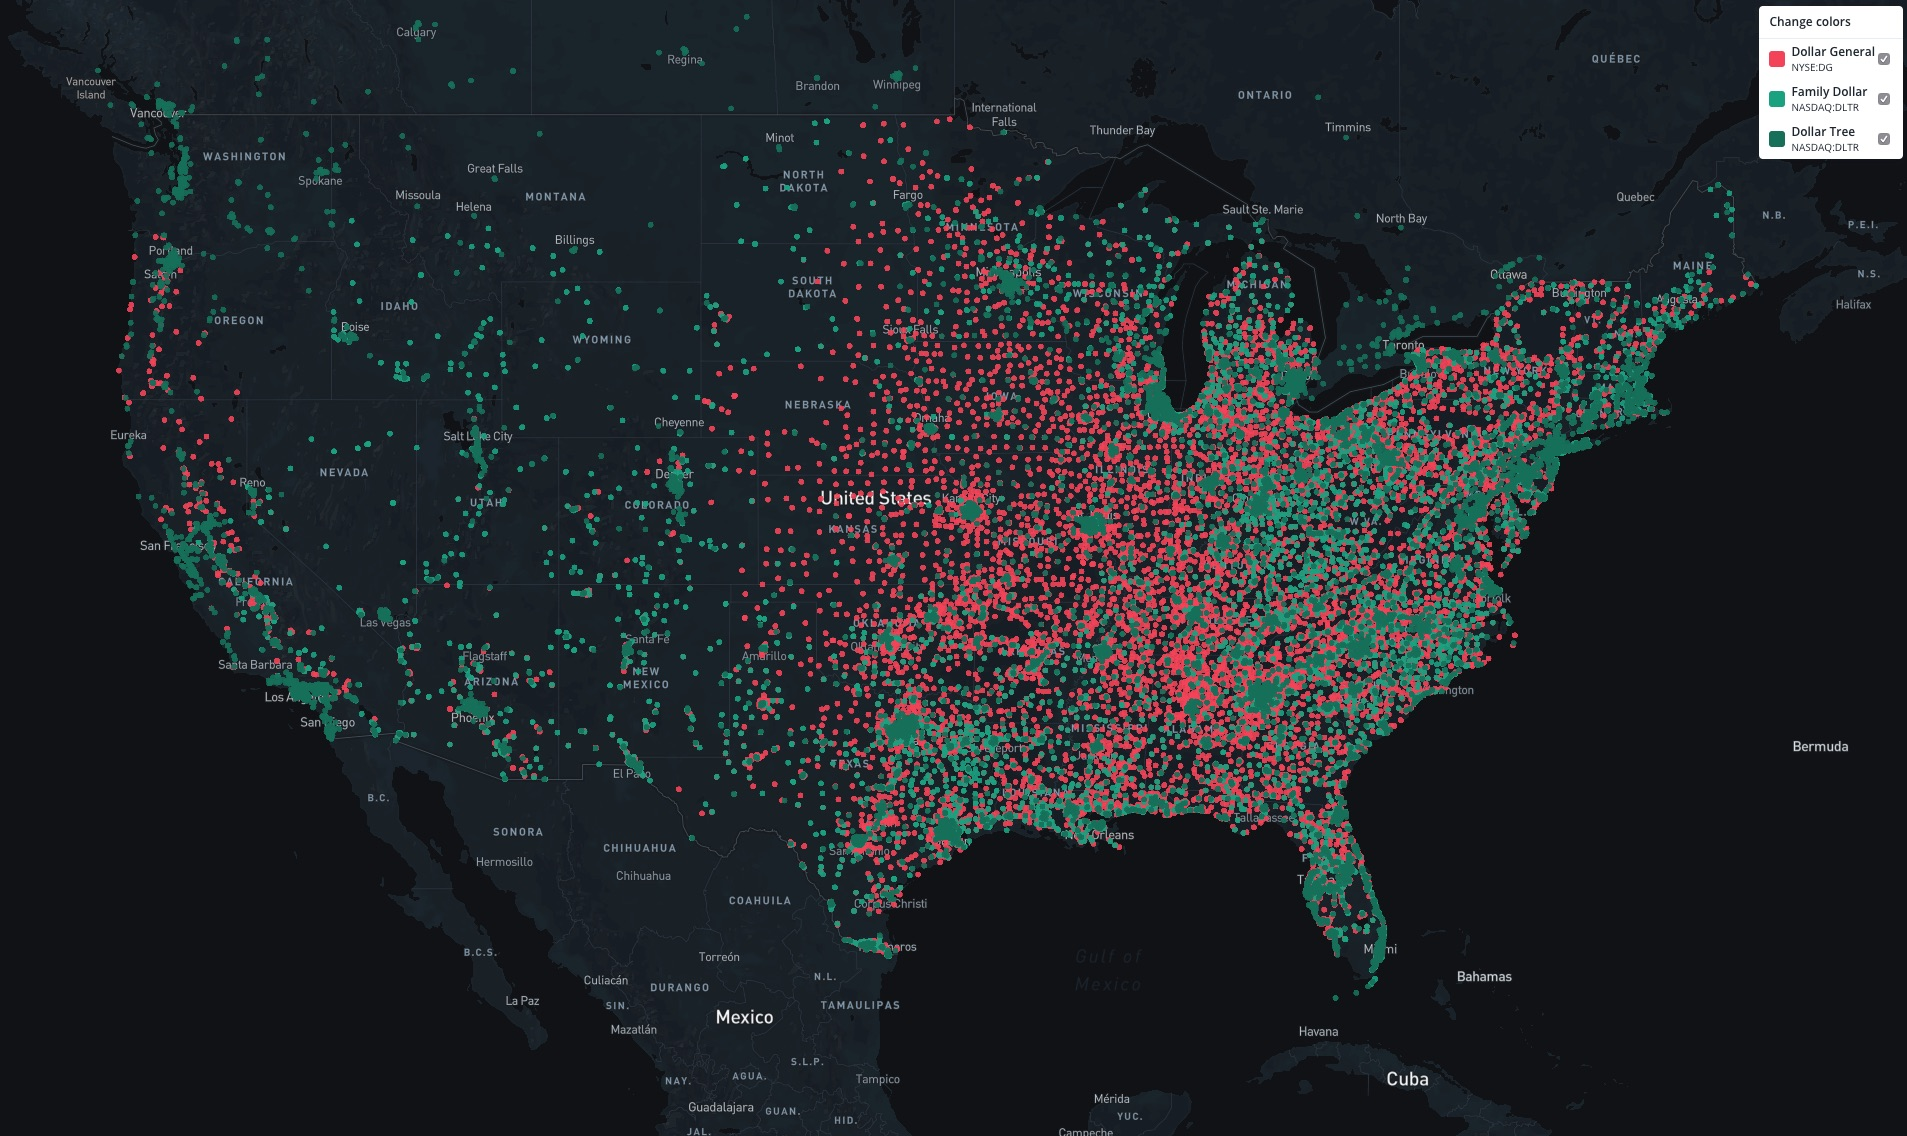 Dollar Stores Take Over America As They Move In On Big Box Territory A Detailed Map And Analysis The Business Of Business